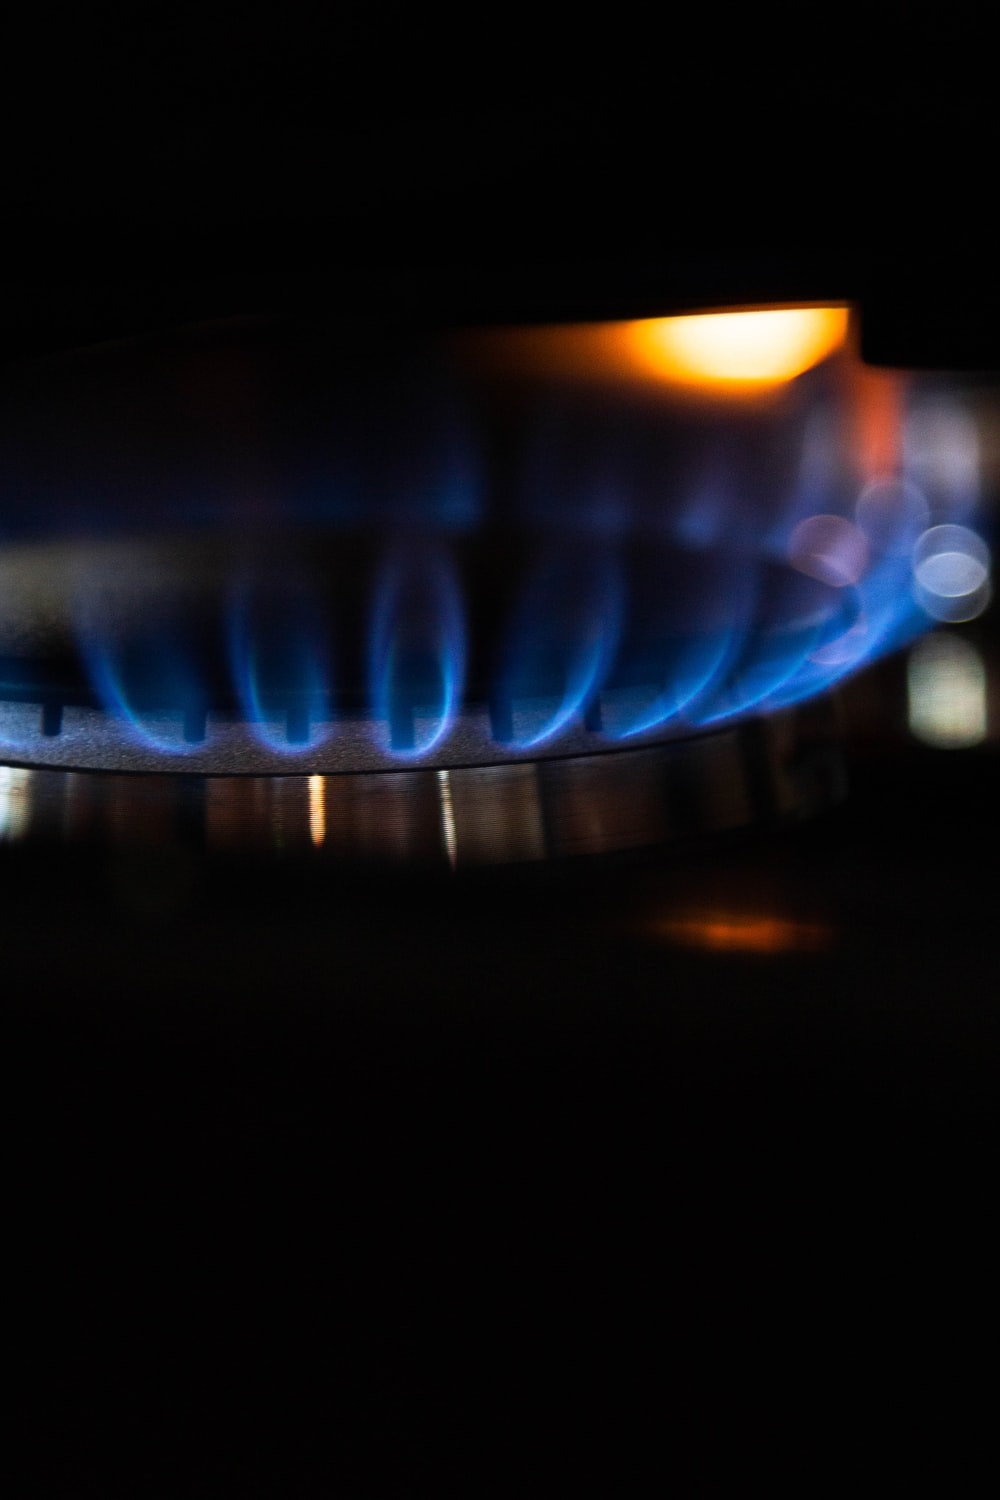 blue and red flame in close up photography